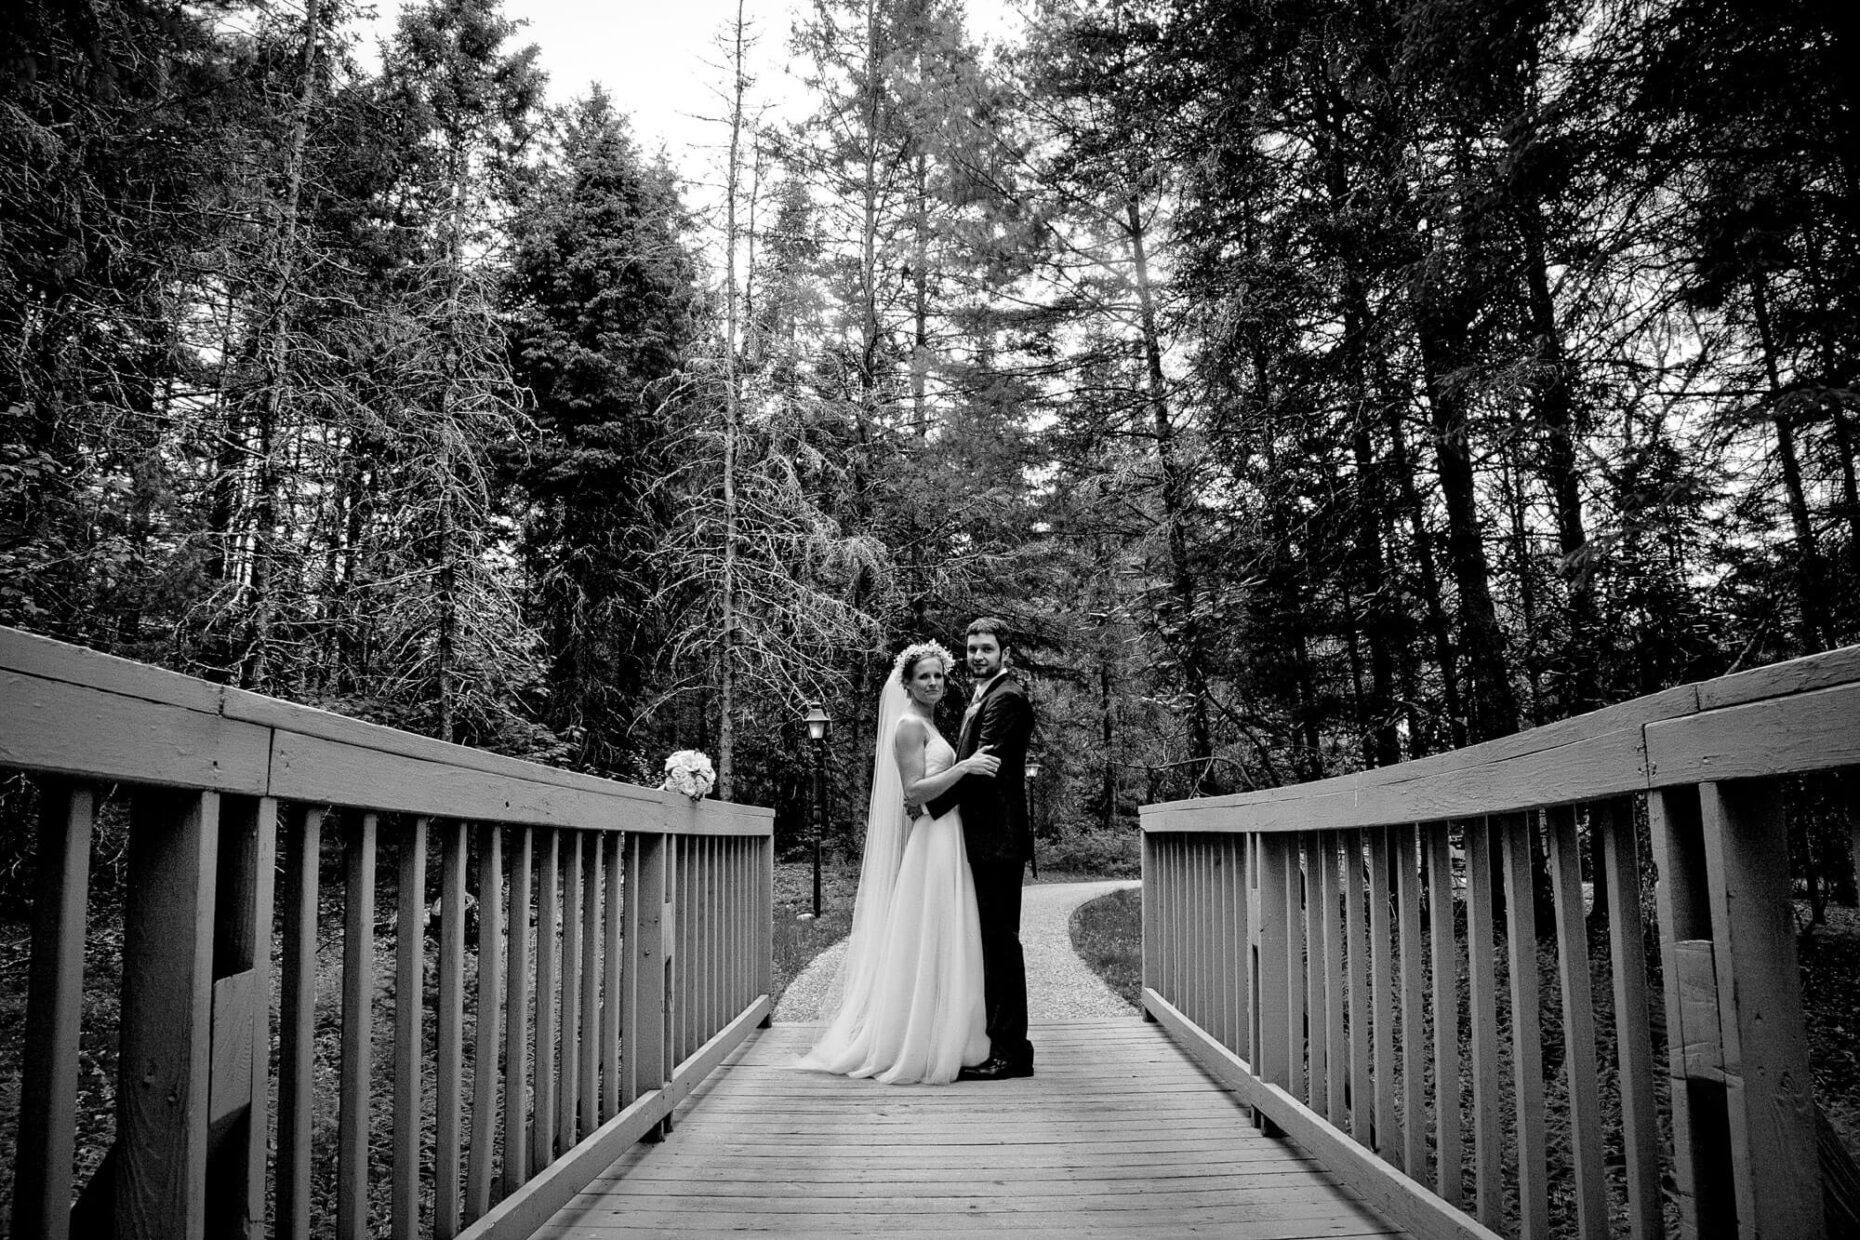 wedding and couple on a bridge in black and white